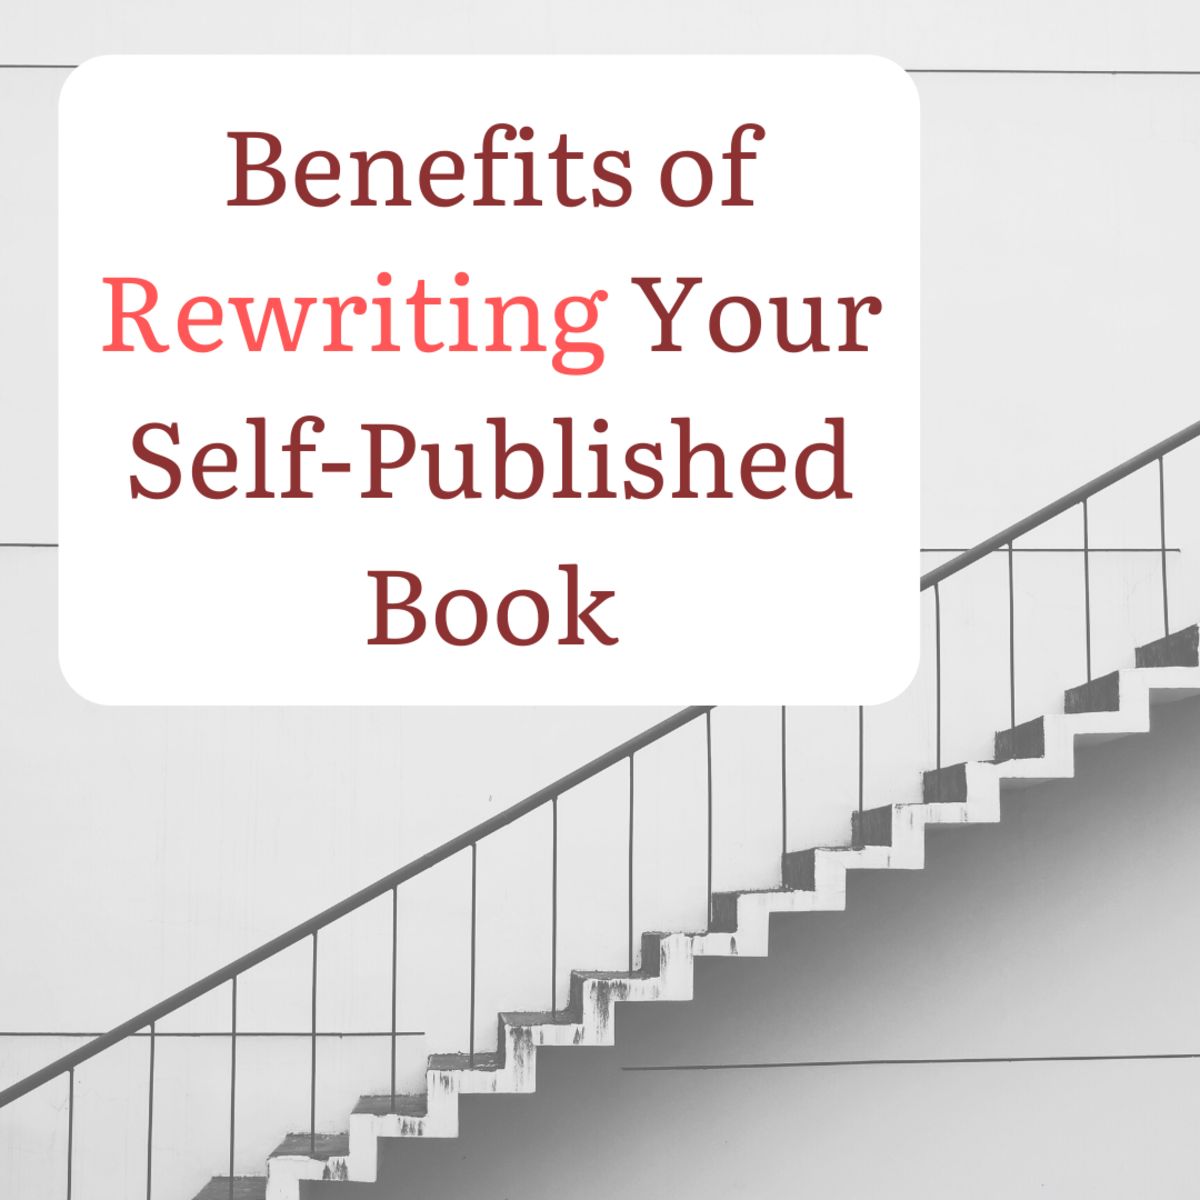 Discover four great reasons to consider rewriting your self-published book.